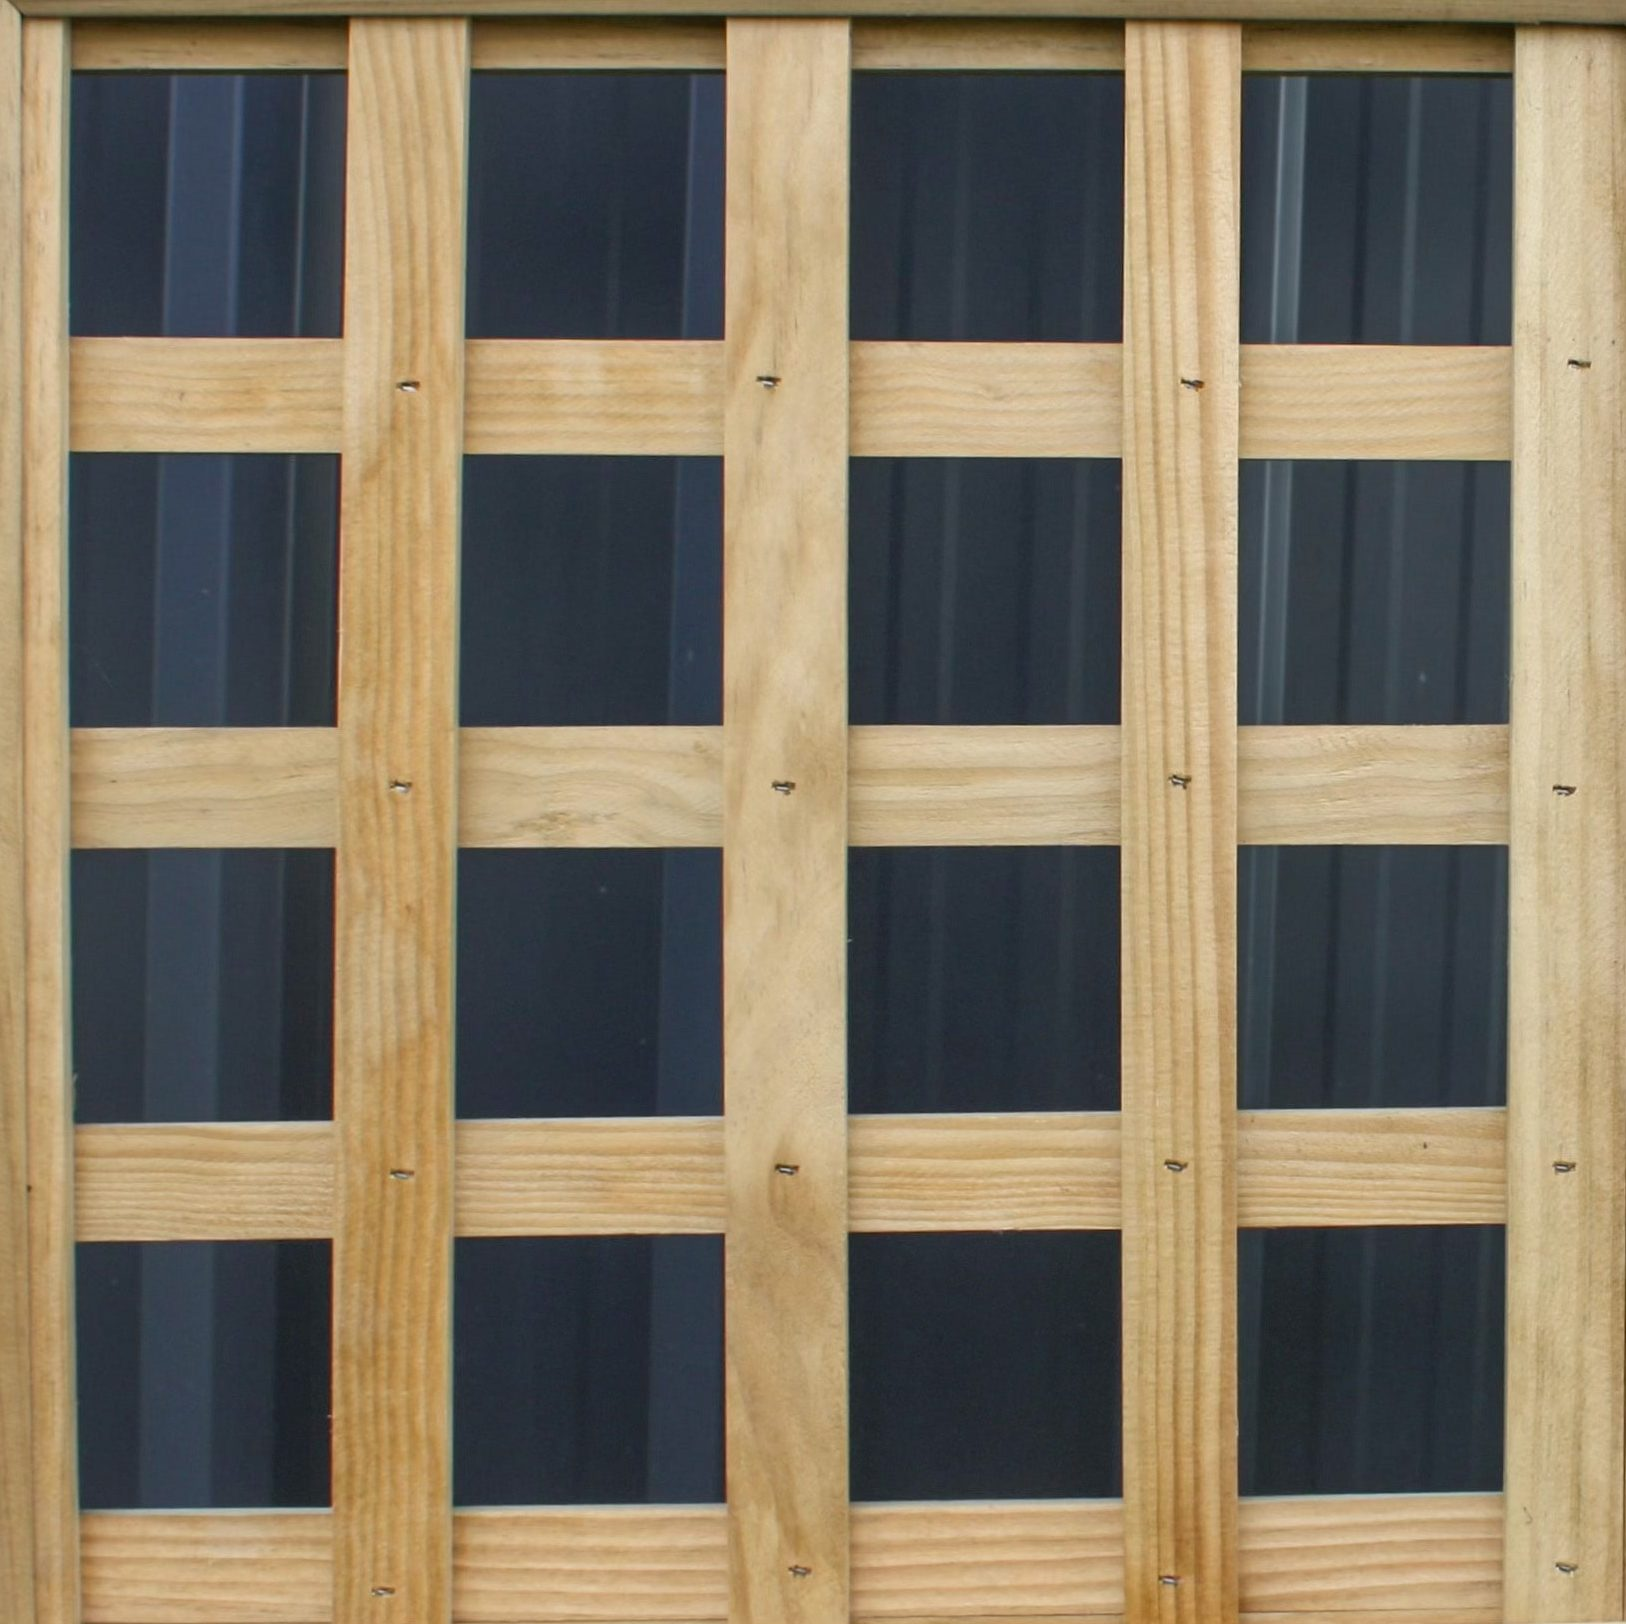 A picture of a 70mm square fence design